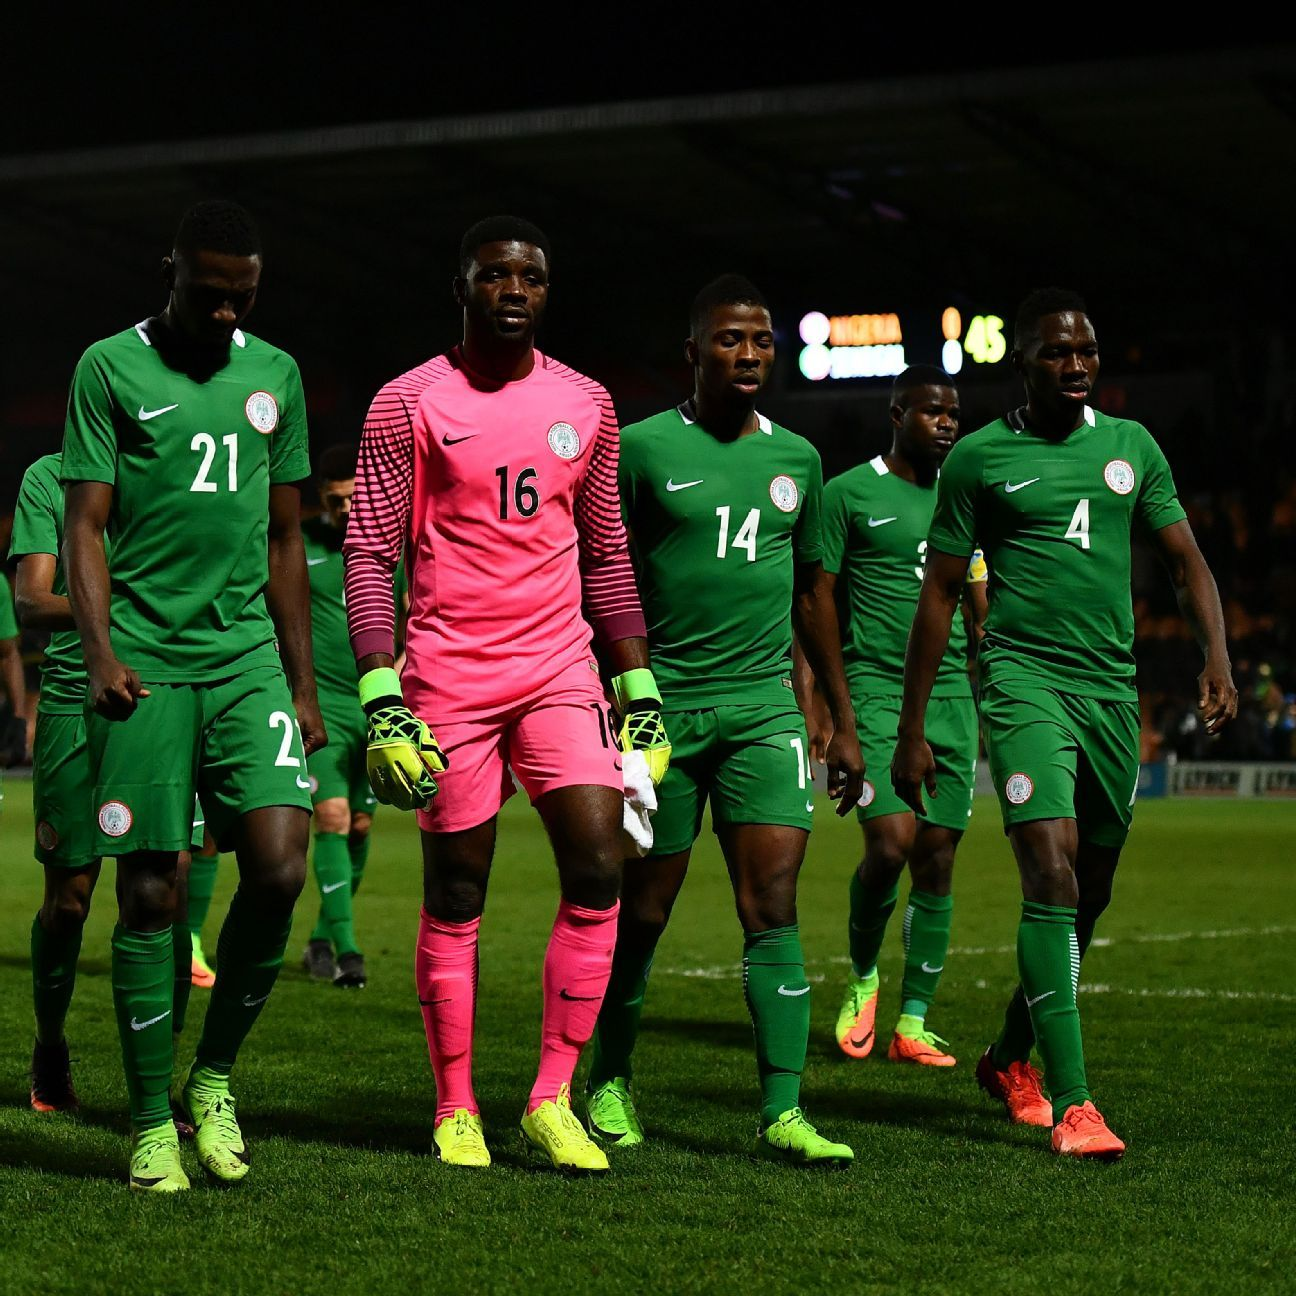 The Nigeria team will need to stand tall in their back-to-back FIFA World Cup qualifiers against Cameroon -- starting at home on Friday.